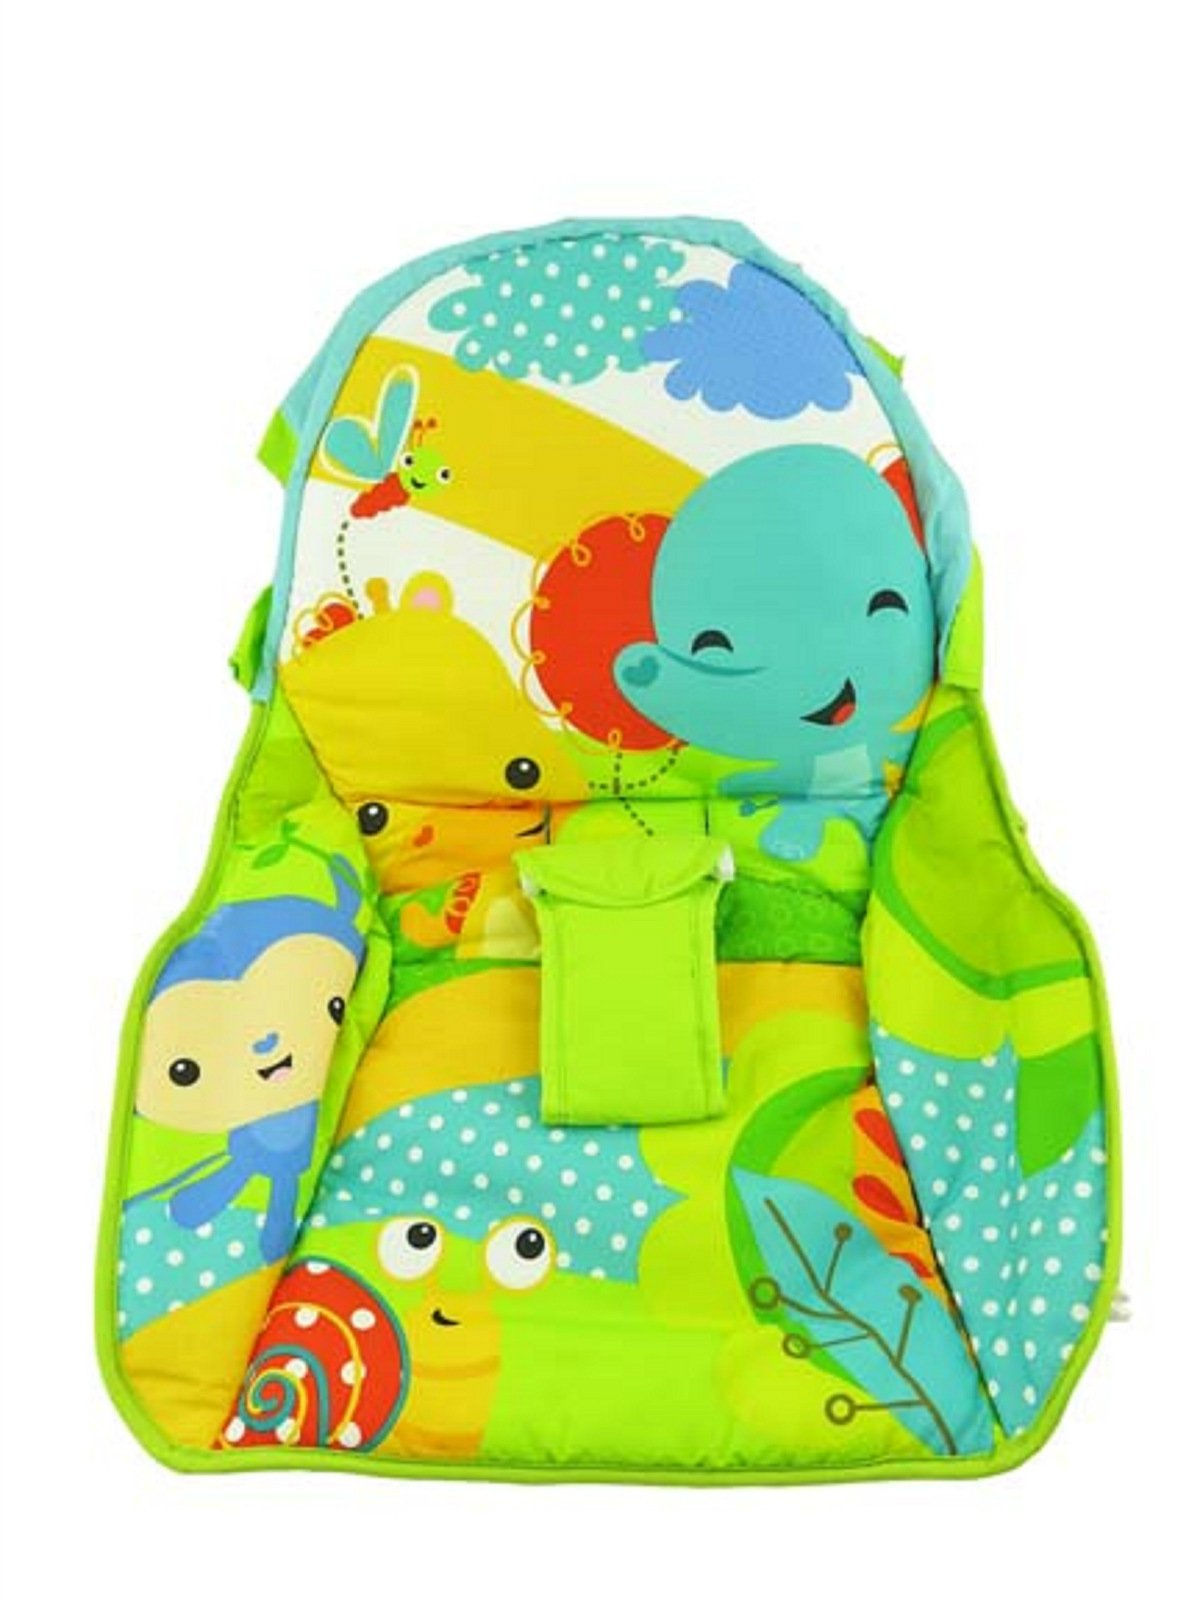 Fisher Price INFANT / NEWBORN TO TODDLER ROCKER Sleeper Replacement Seat Pad , DMR86 BEFORE 6/4/16 RAINFOREST FRIENDS PAD by Fisher-Price